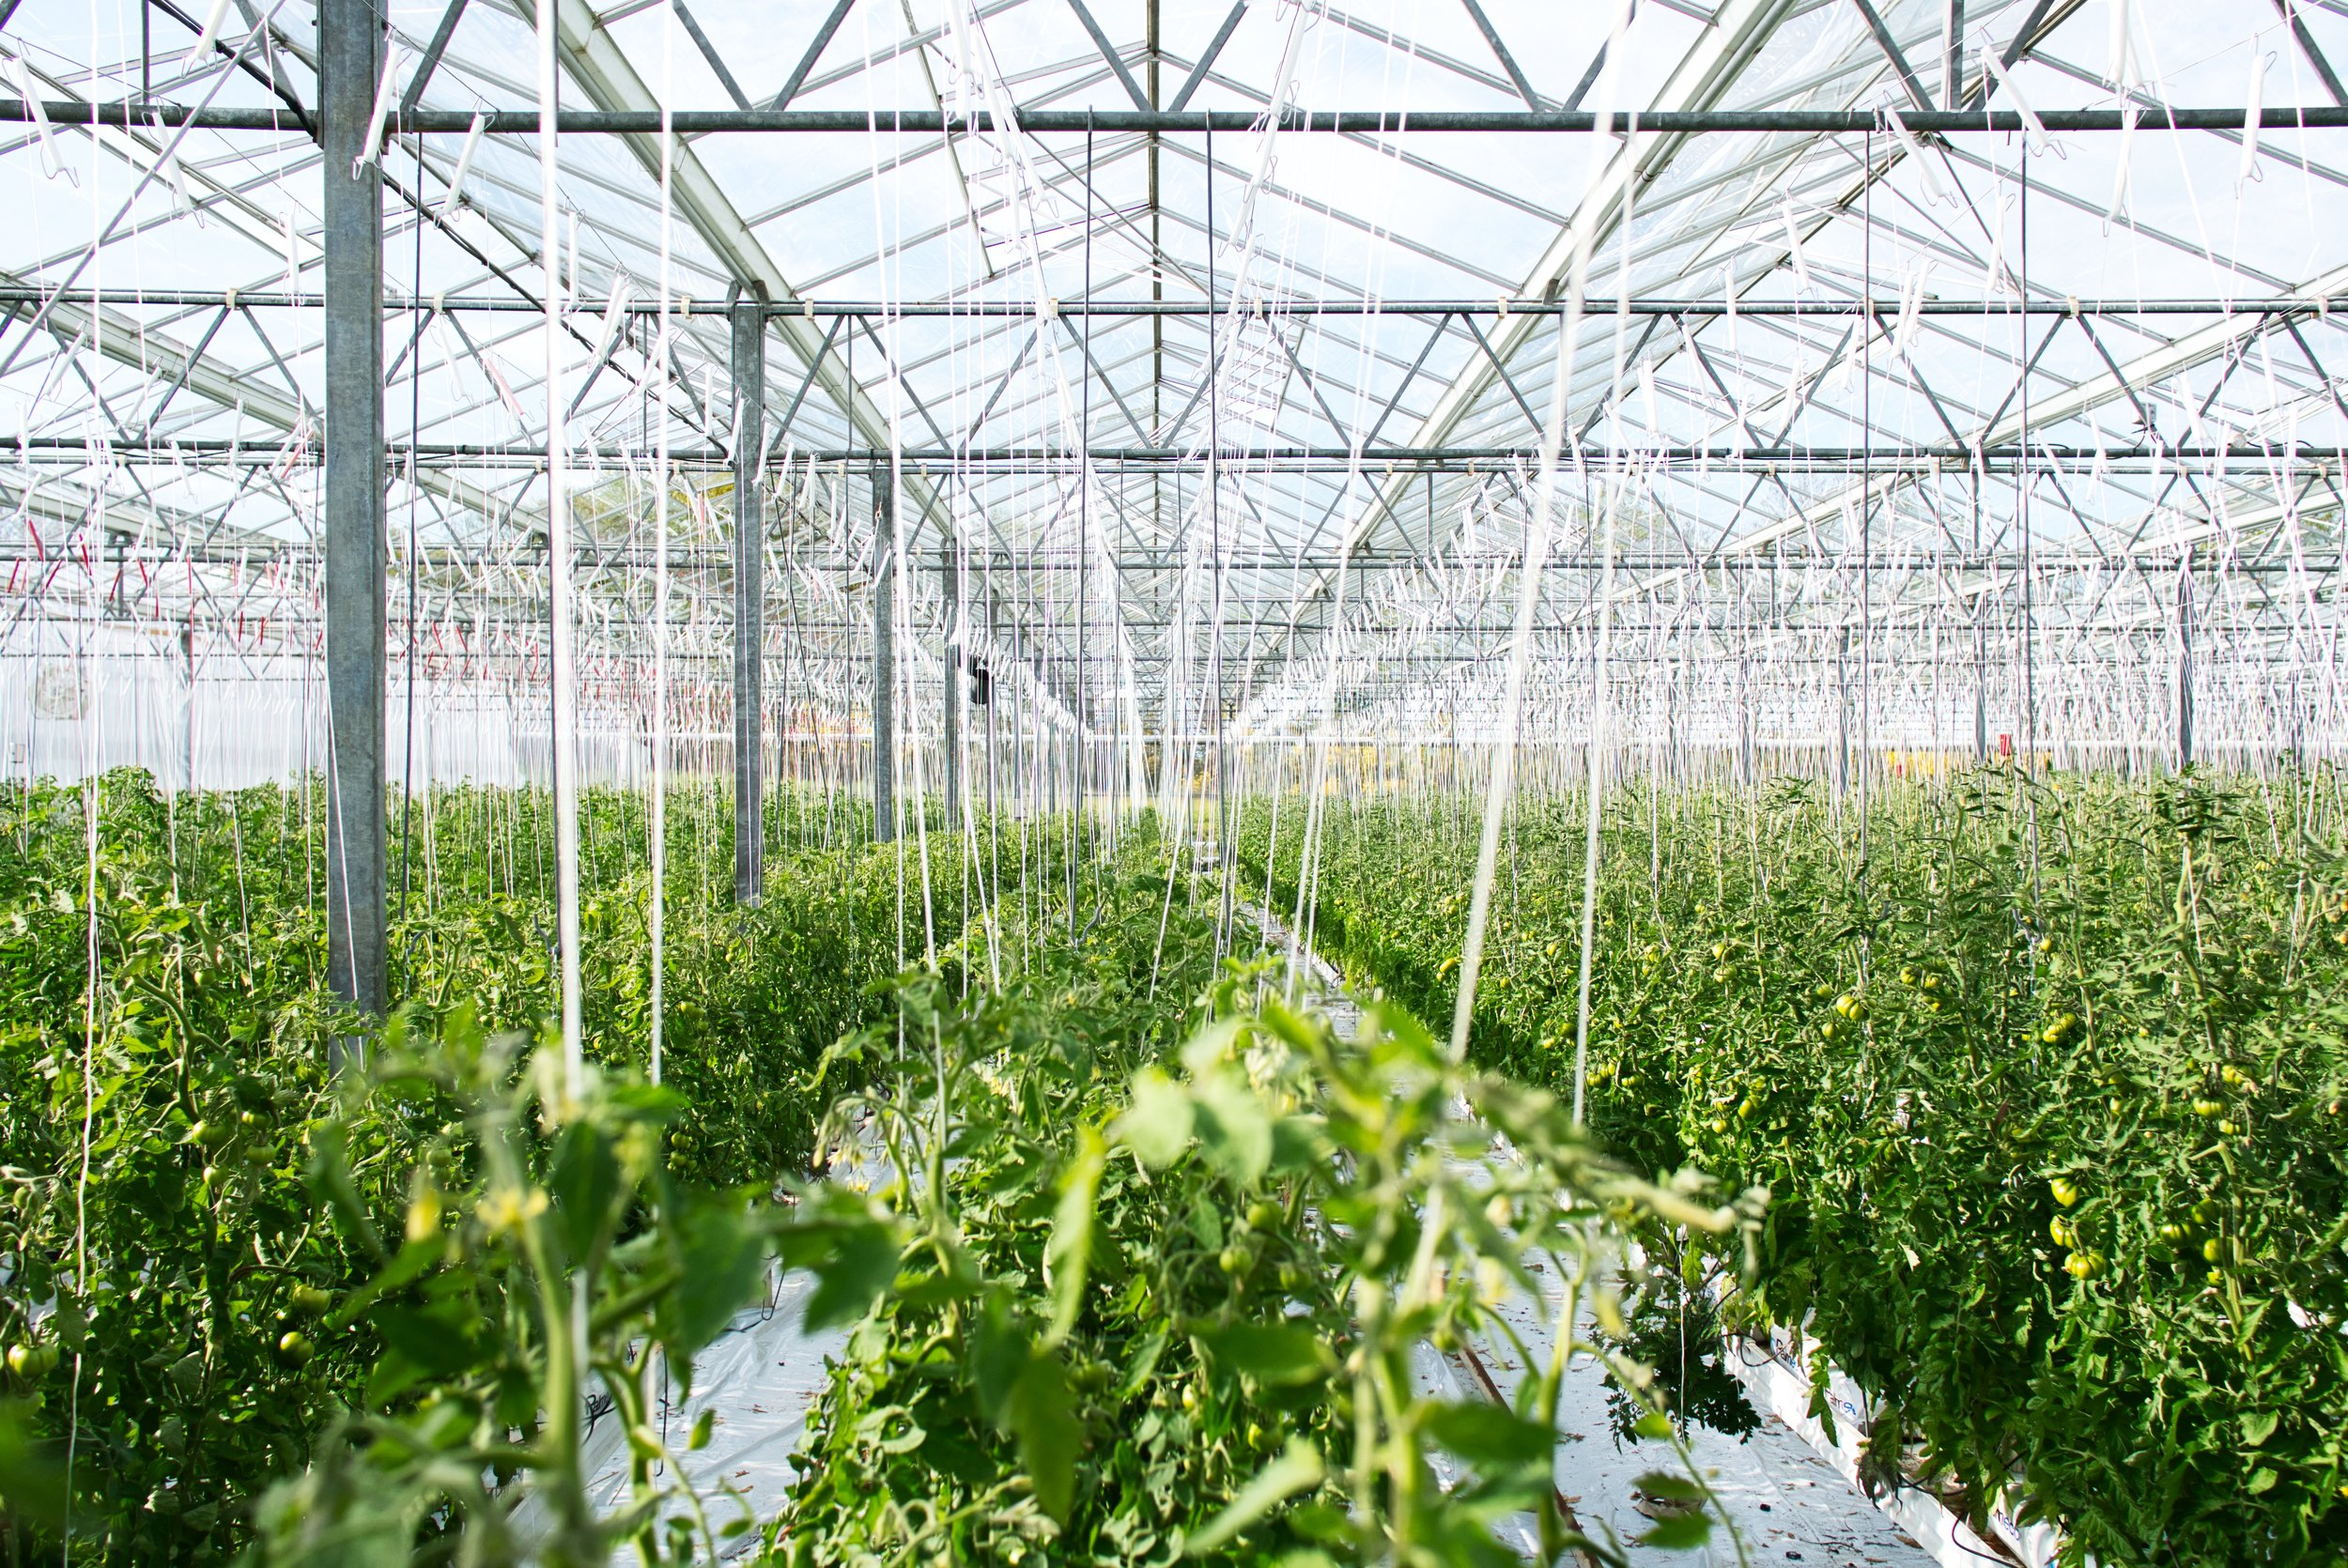 Tomato production in a greenhouse in France. Credit: Erwan Hesry